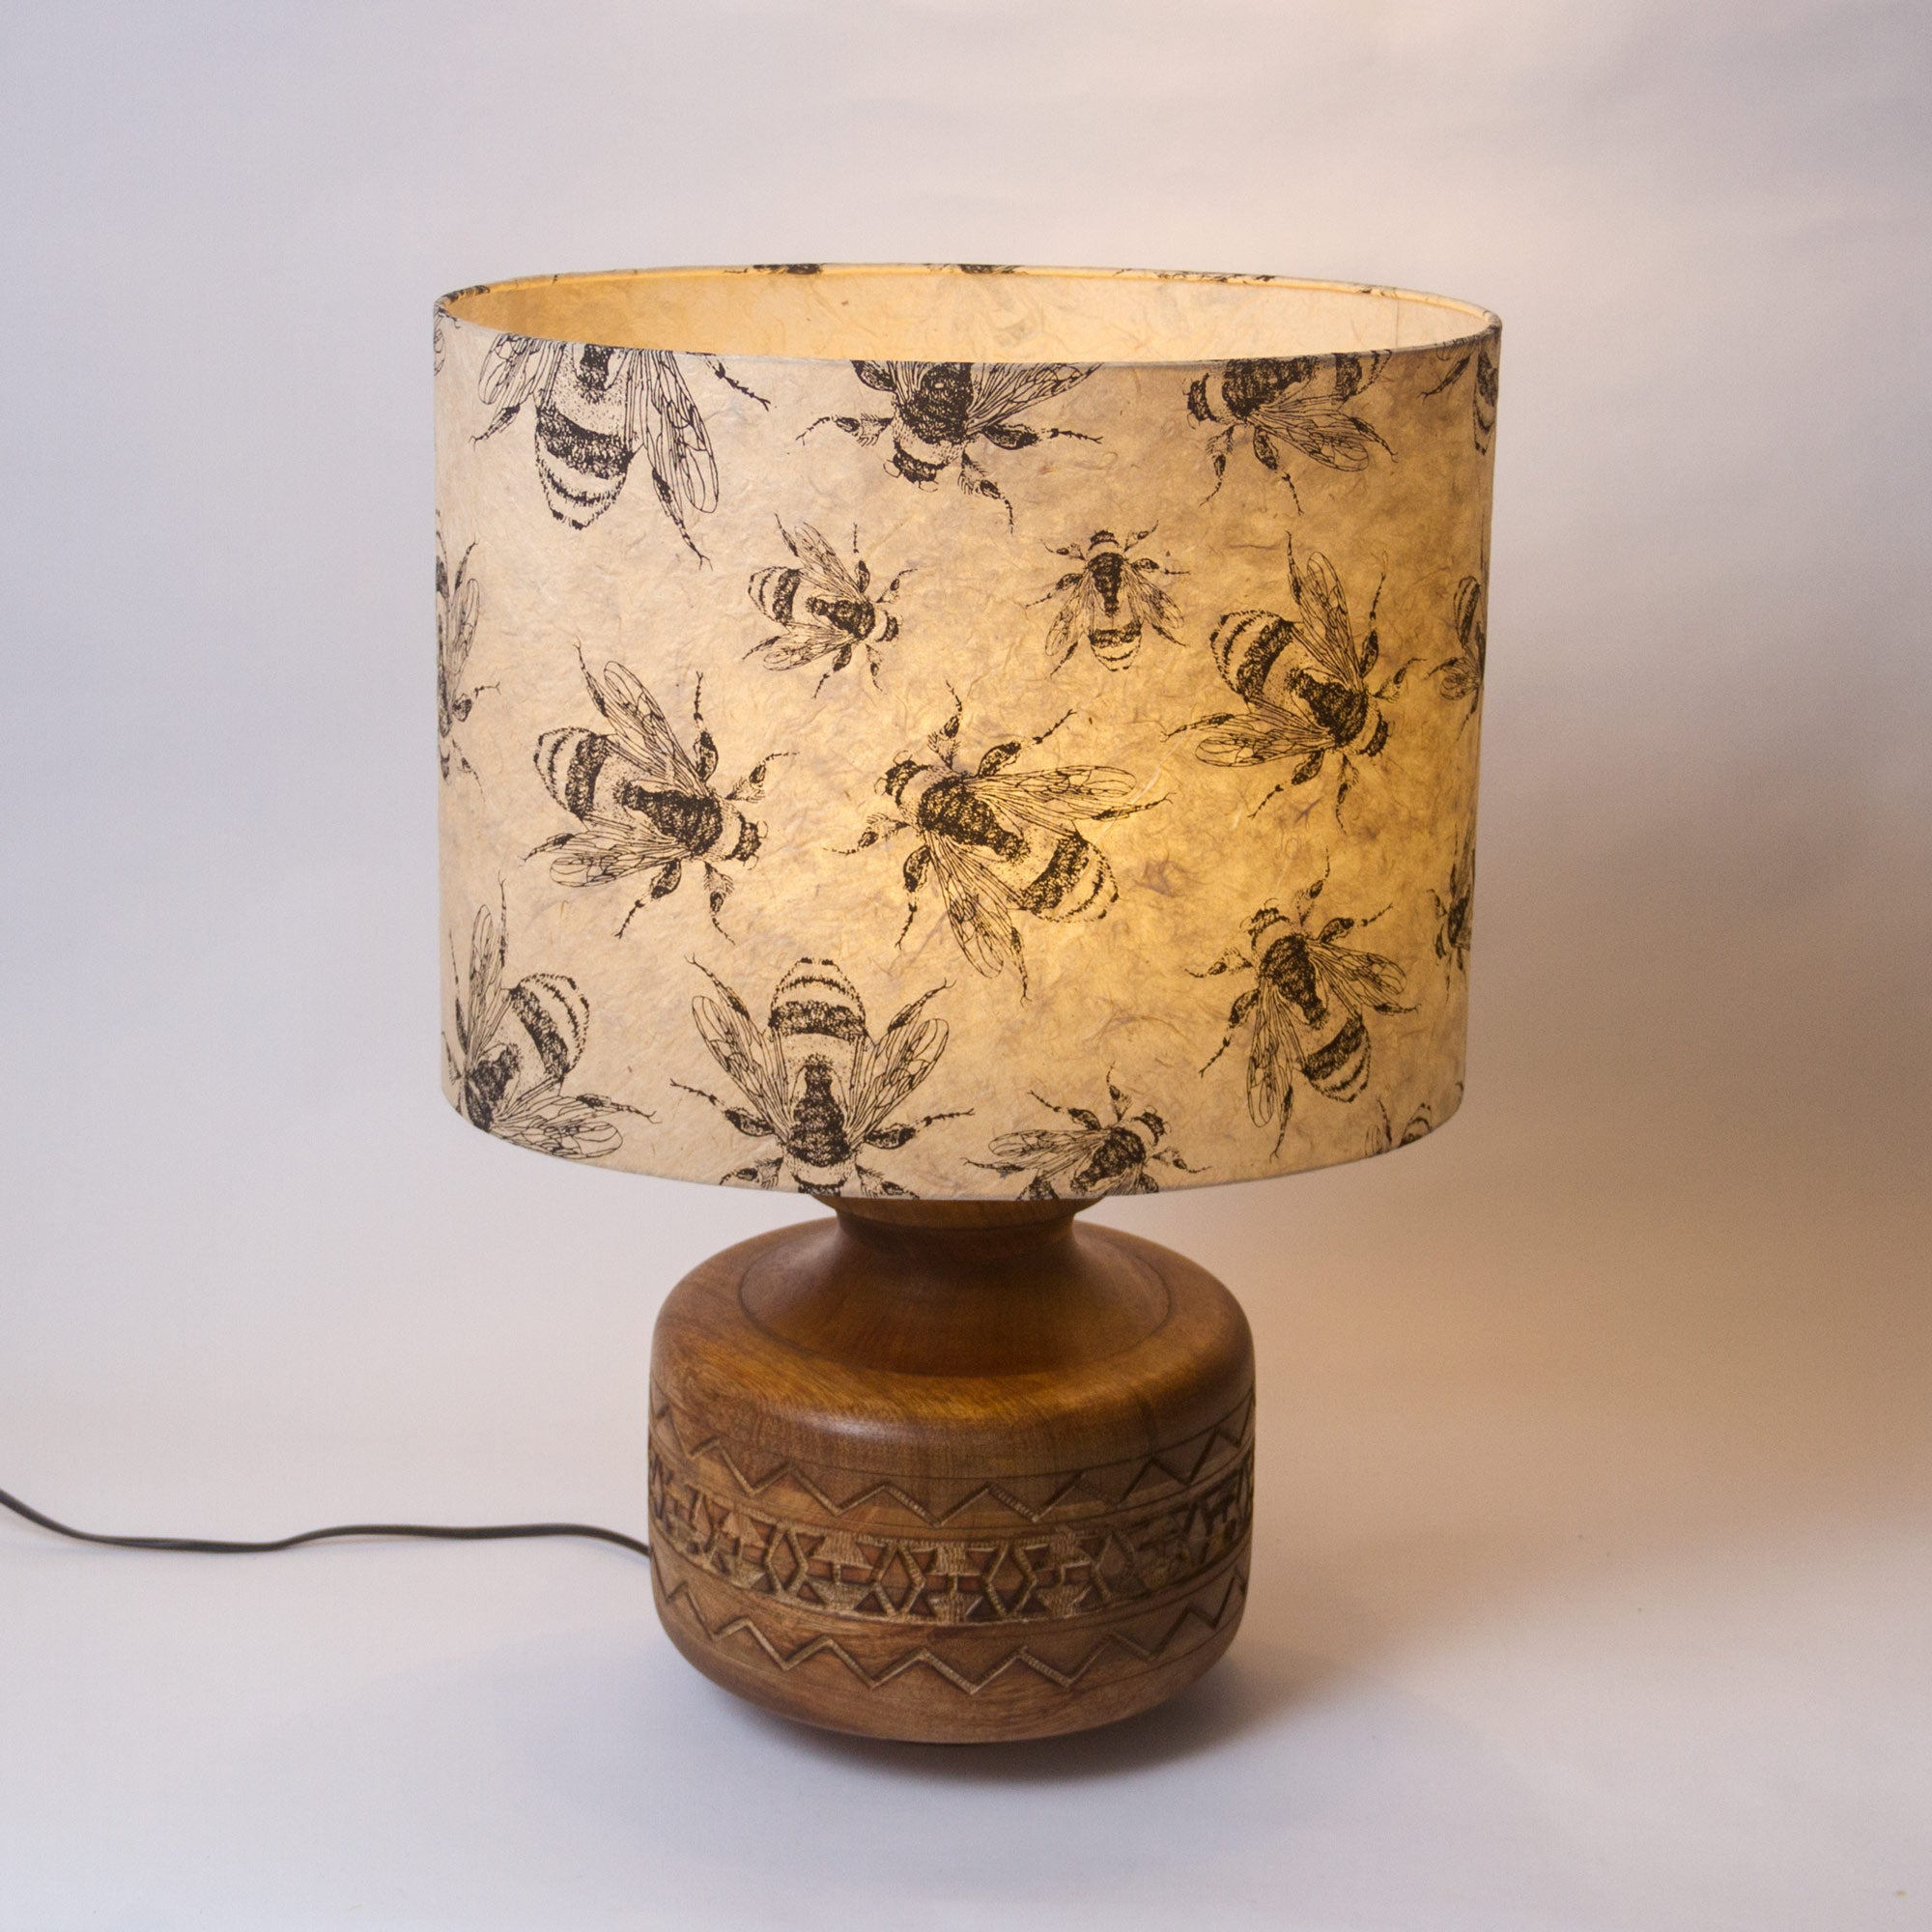 Kanpur Carved Wooden Table Lamp Base With Oval Lamp Shade P42 40cm Wi Imbue Lighting